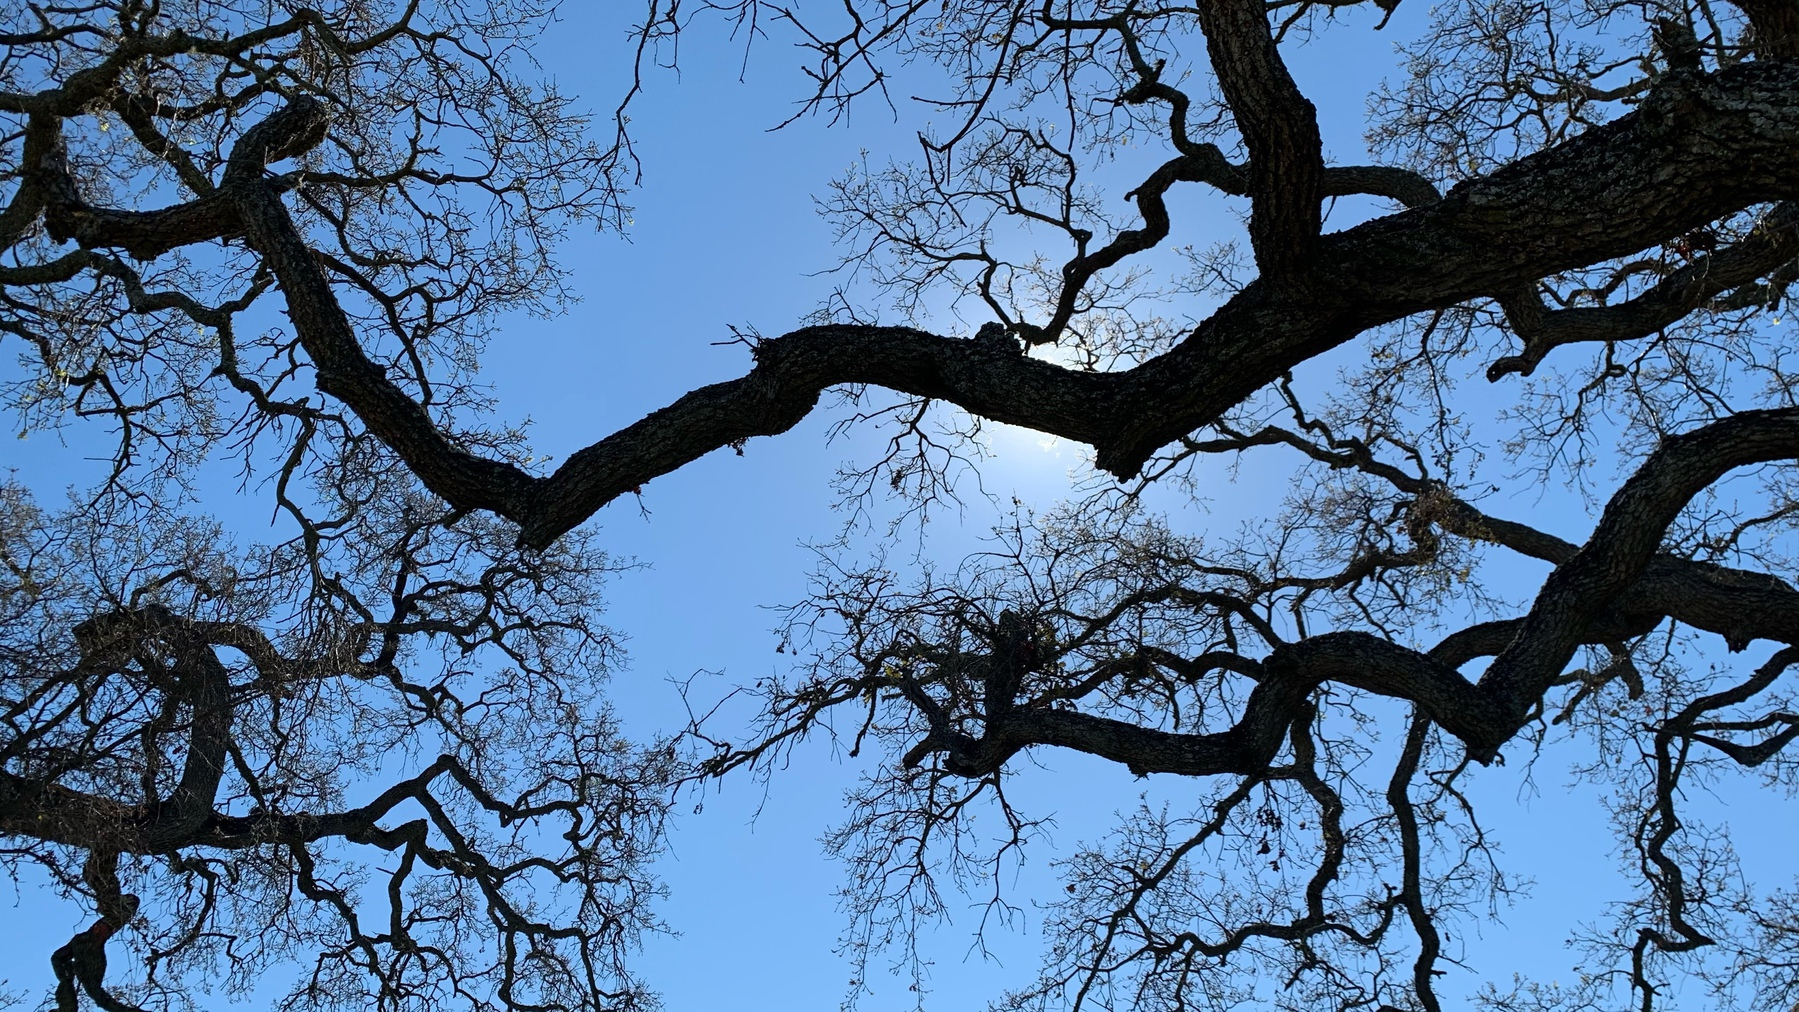 looking up into bare white oak branches back lit by the sun